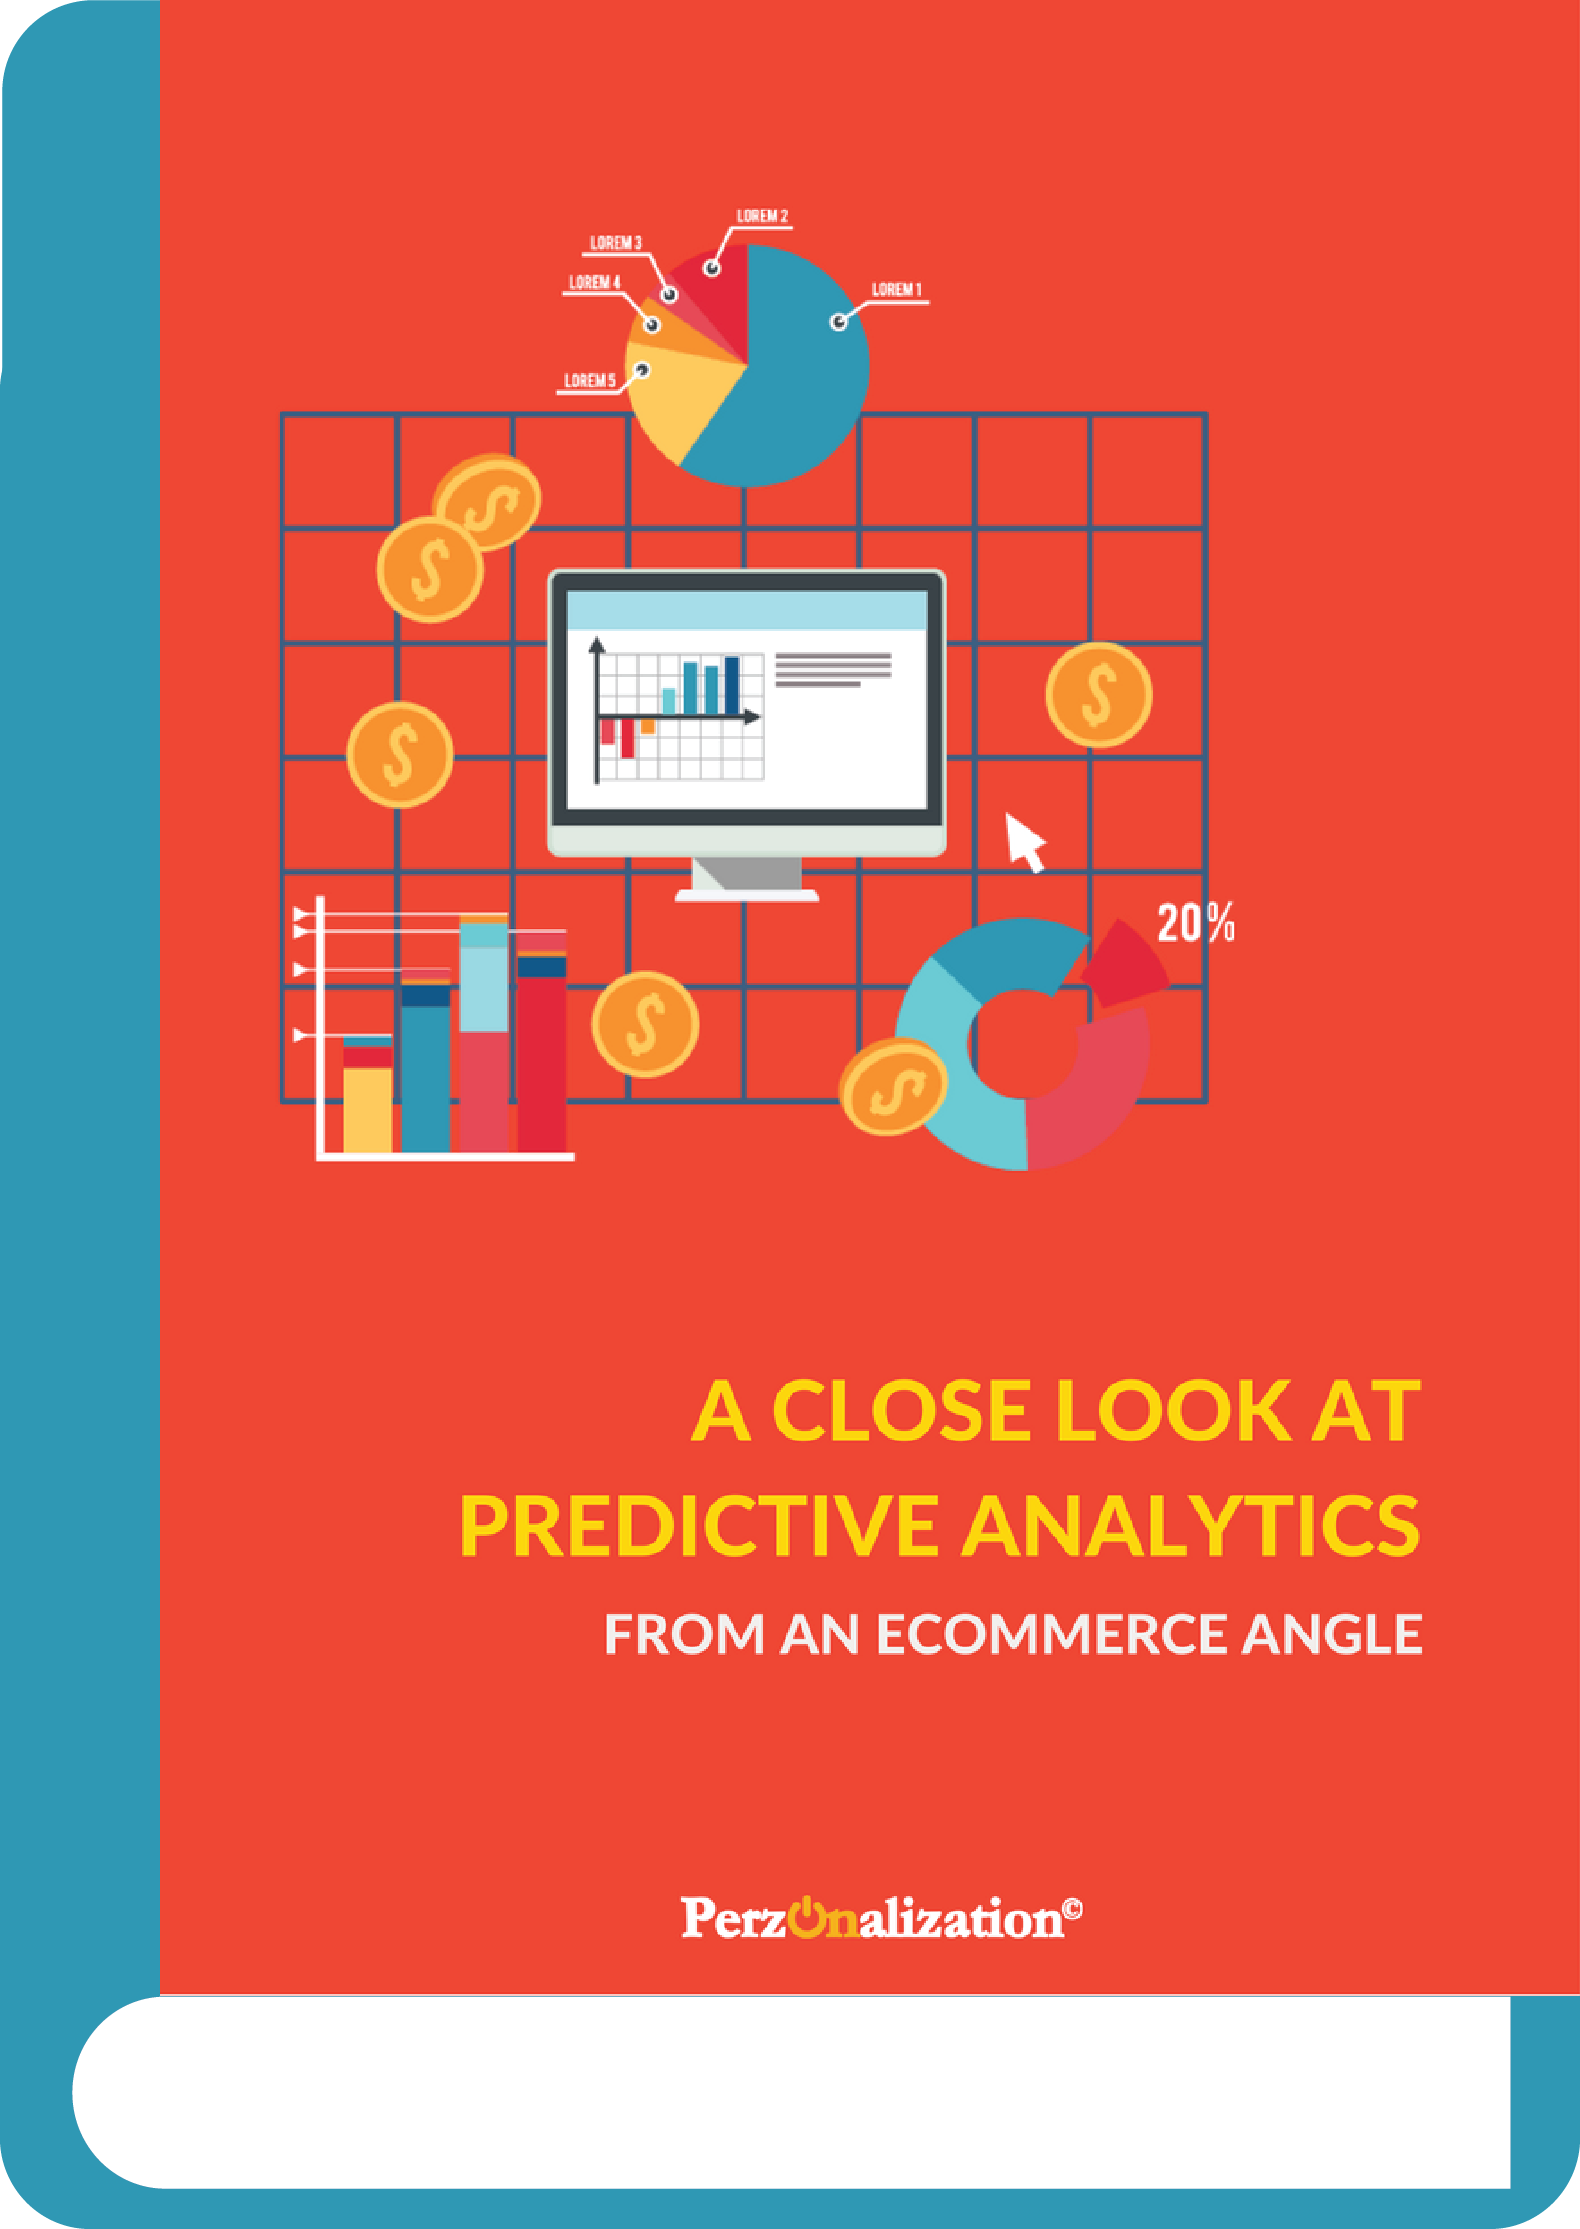 Predictive Analytics is not an enterprise-only solution anymore. SMB eCommerce owners can now analyse data and understand the usage patterns with SaaS apps.